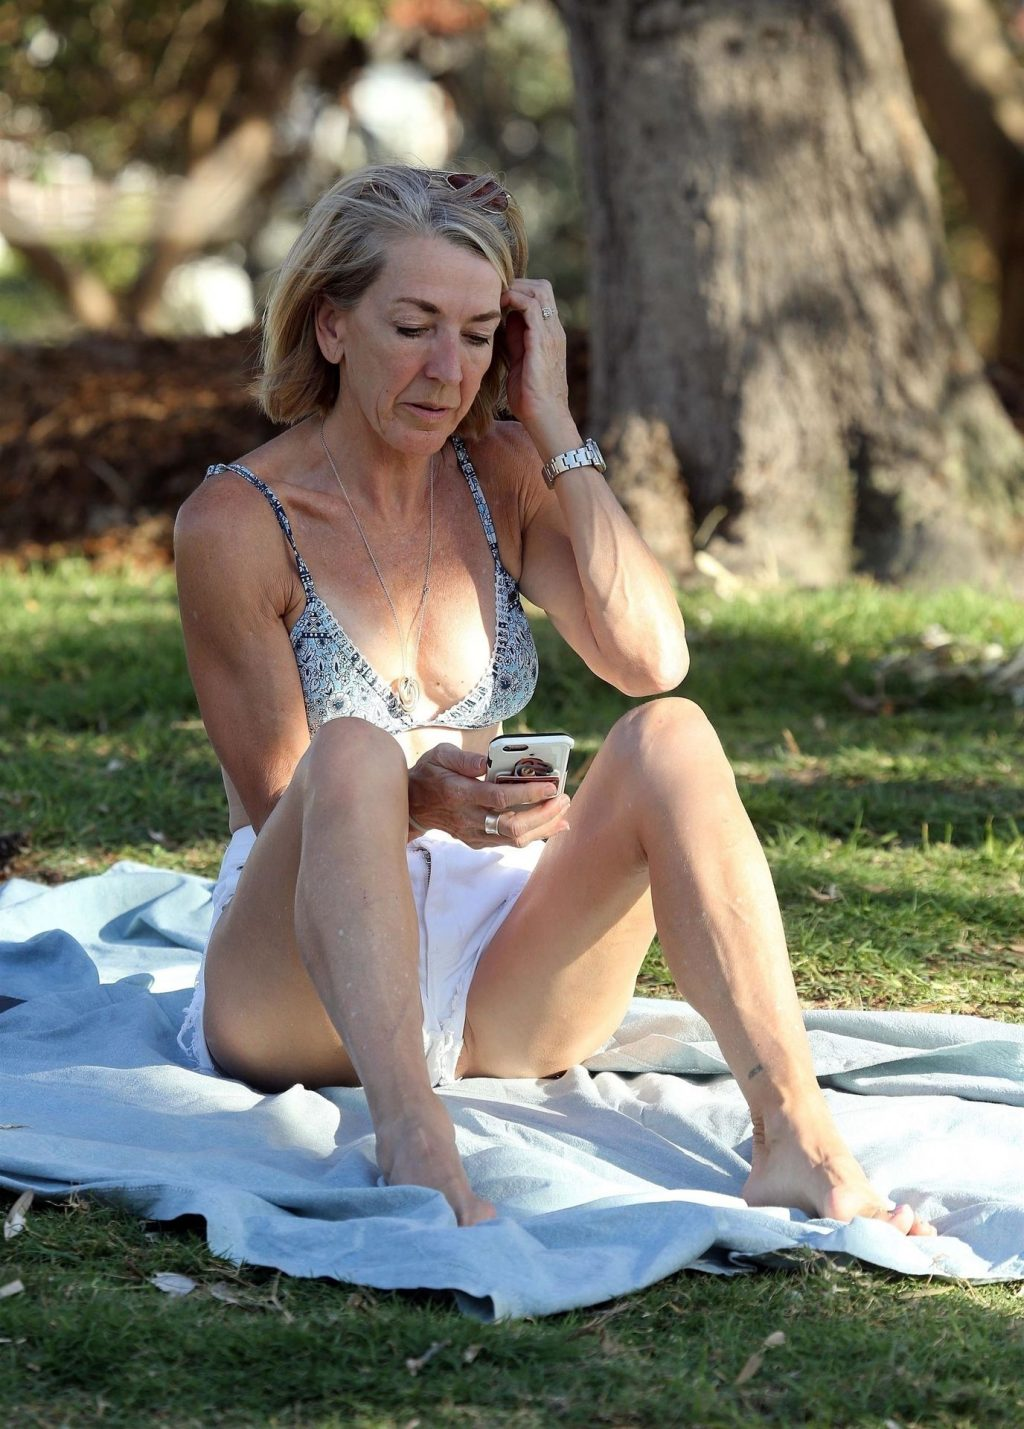 Jane Flemming Is Looking Great as She Sunbathes on Bondi Beach (9 Photos)